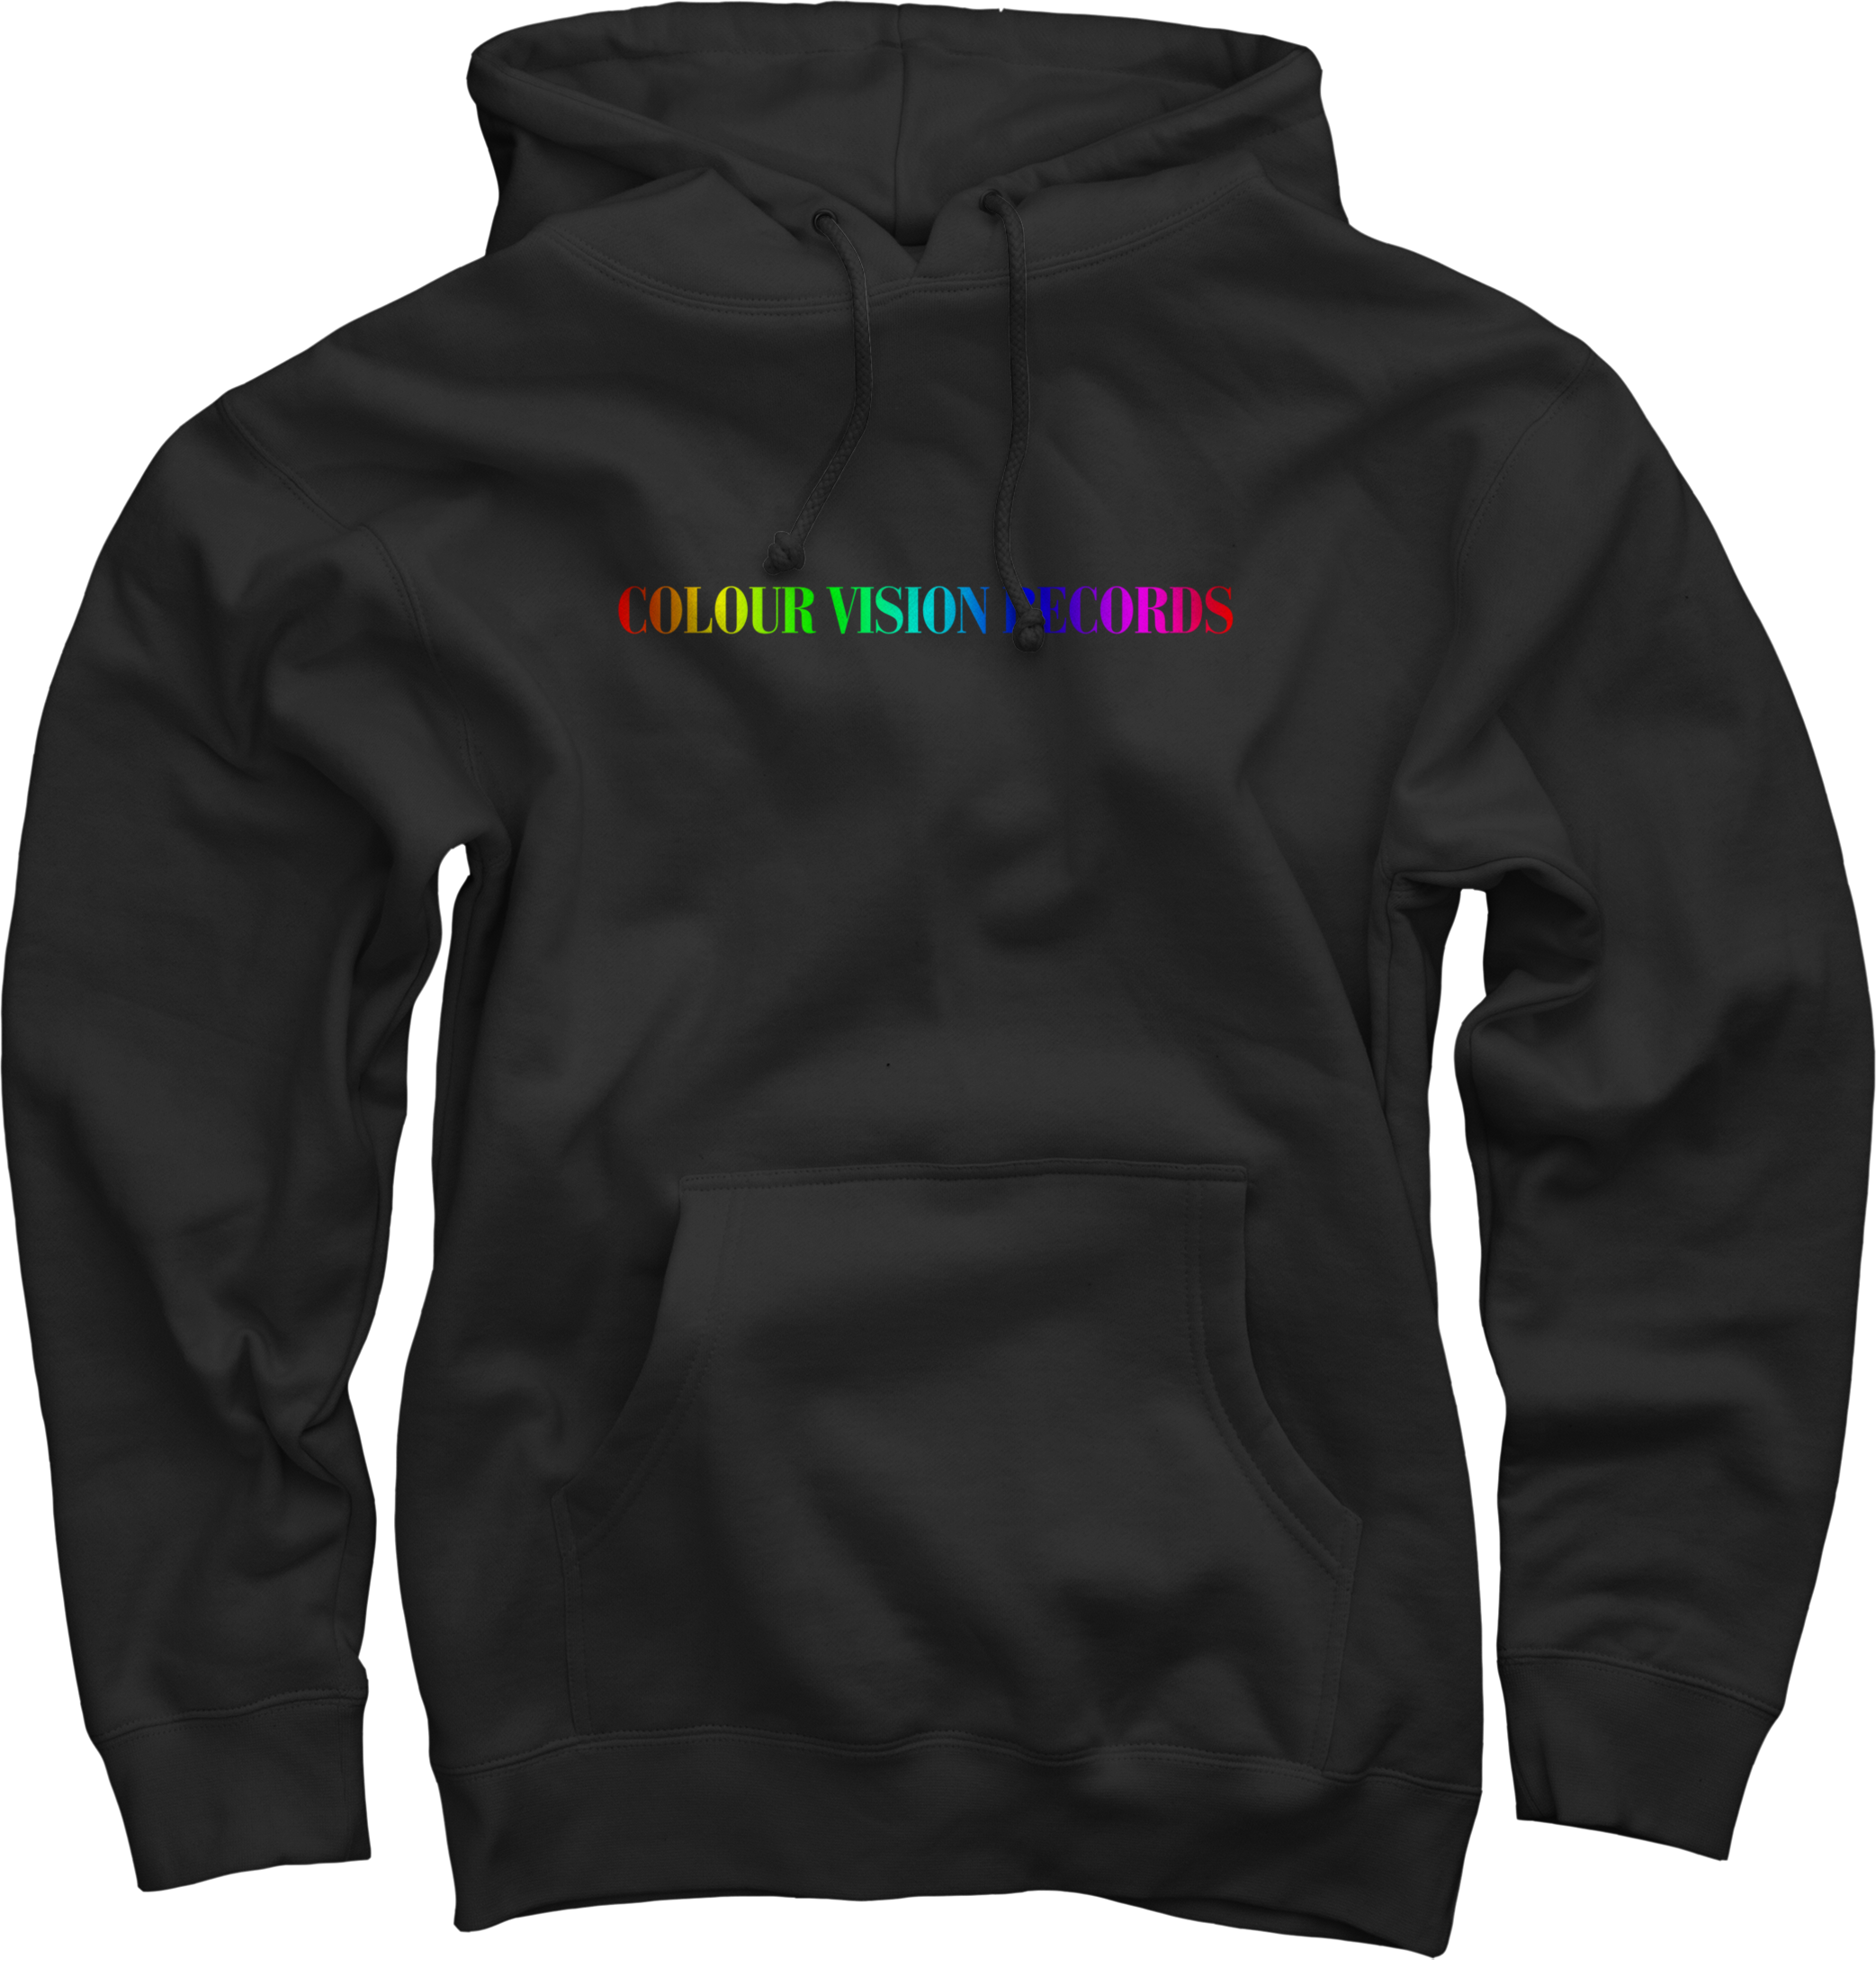 Colour Vision Records Hoodie